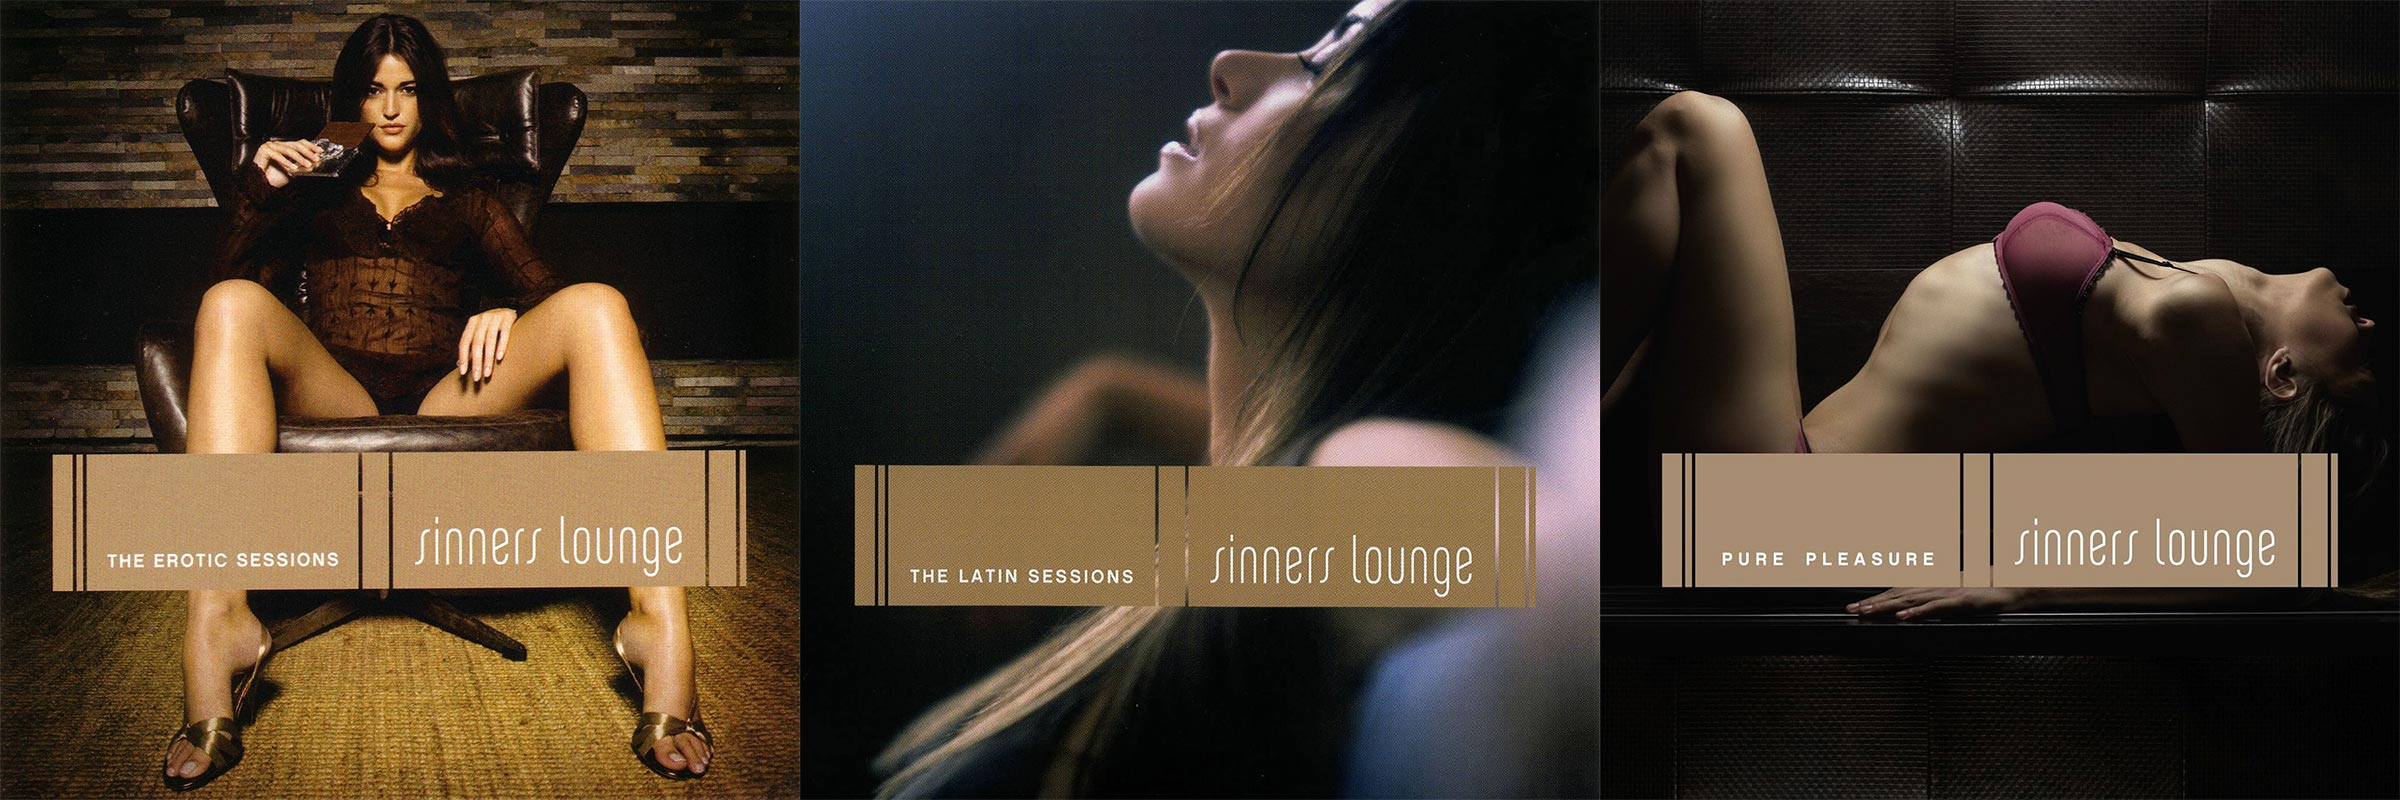 Sinners lounge erotic sessions